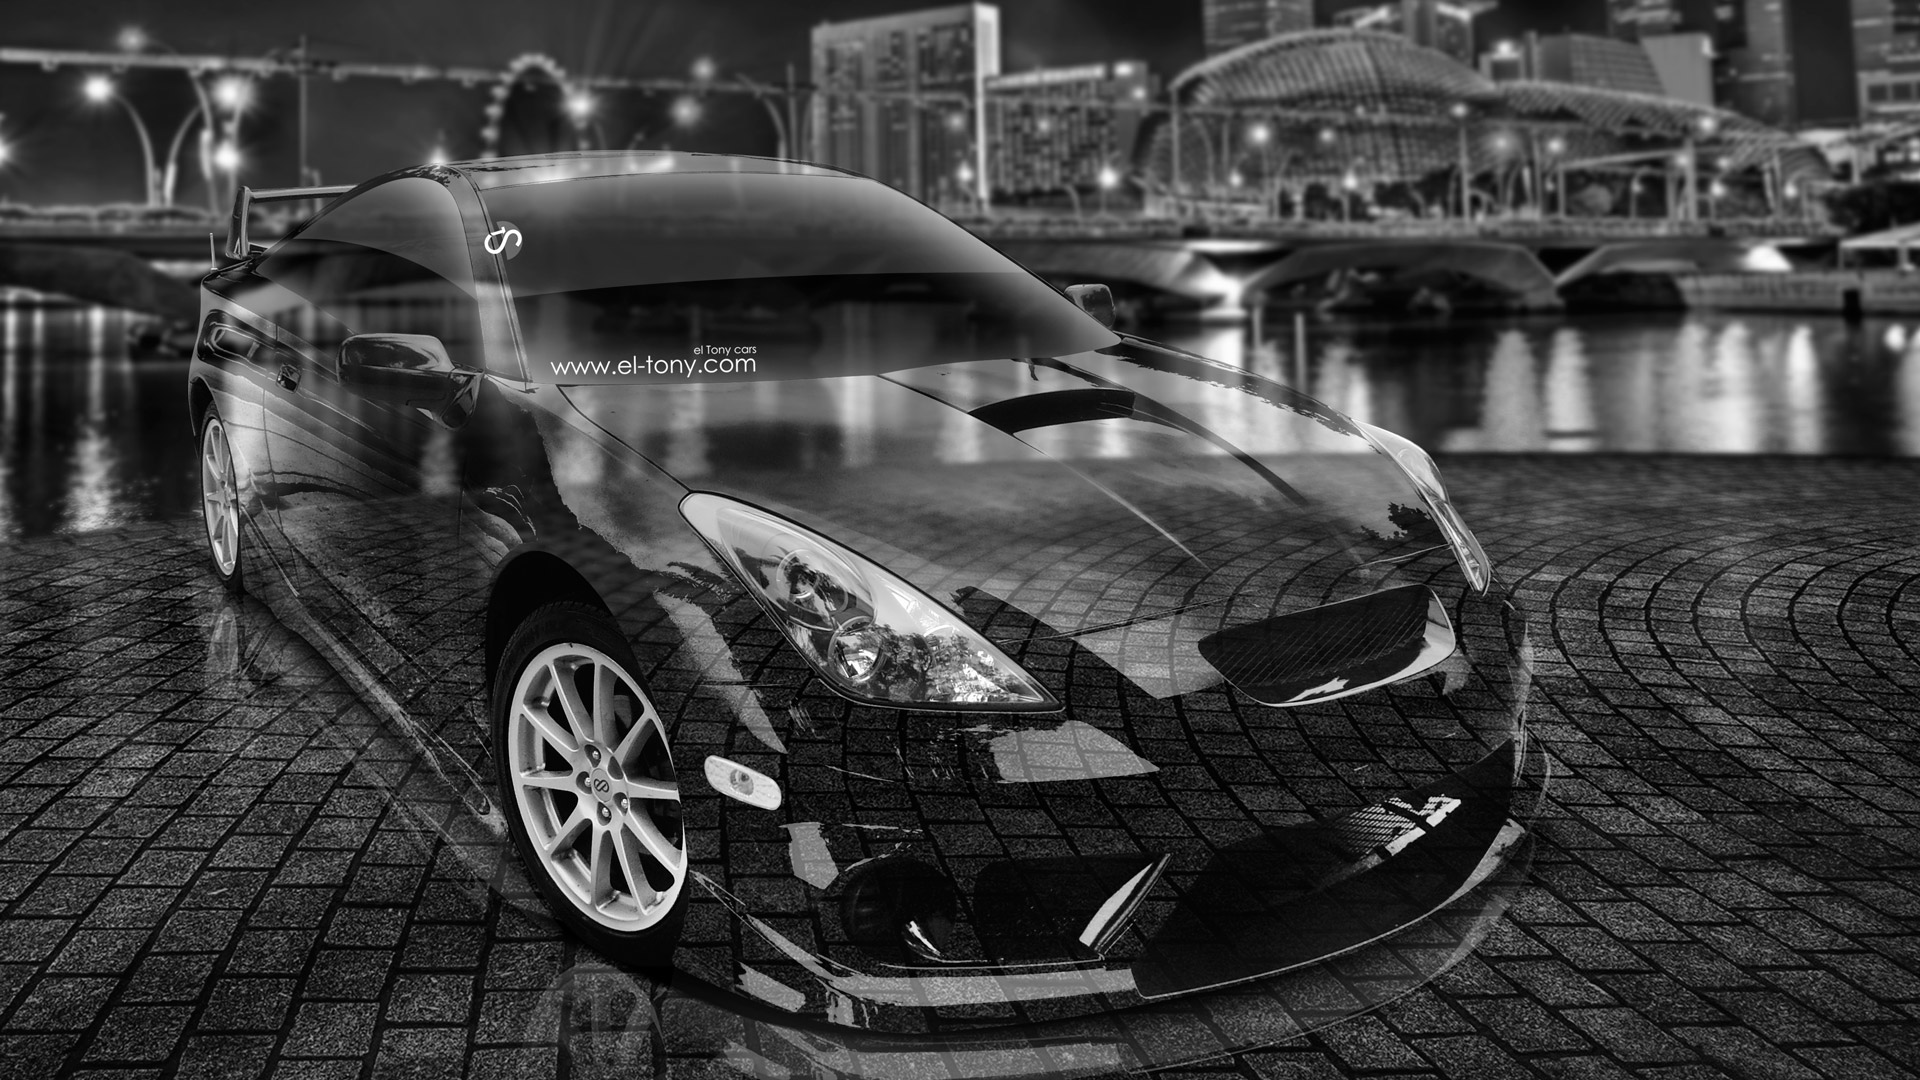 Toyota Celica JDM Tuning 3D Crystal City Car